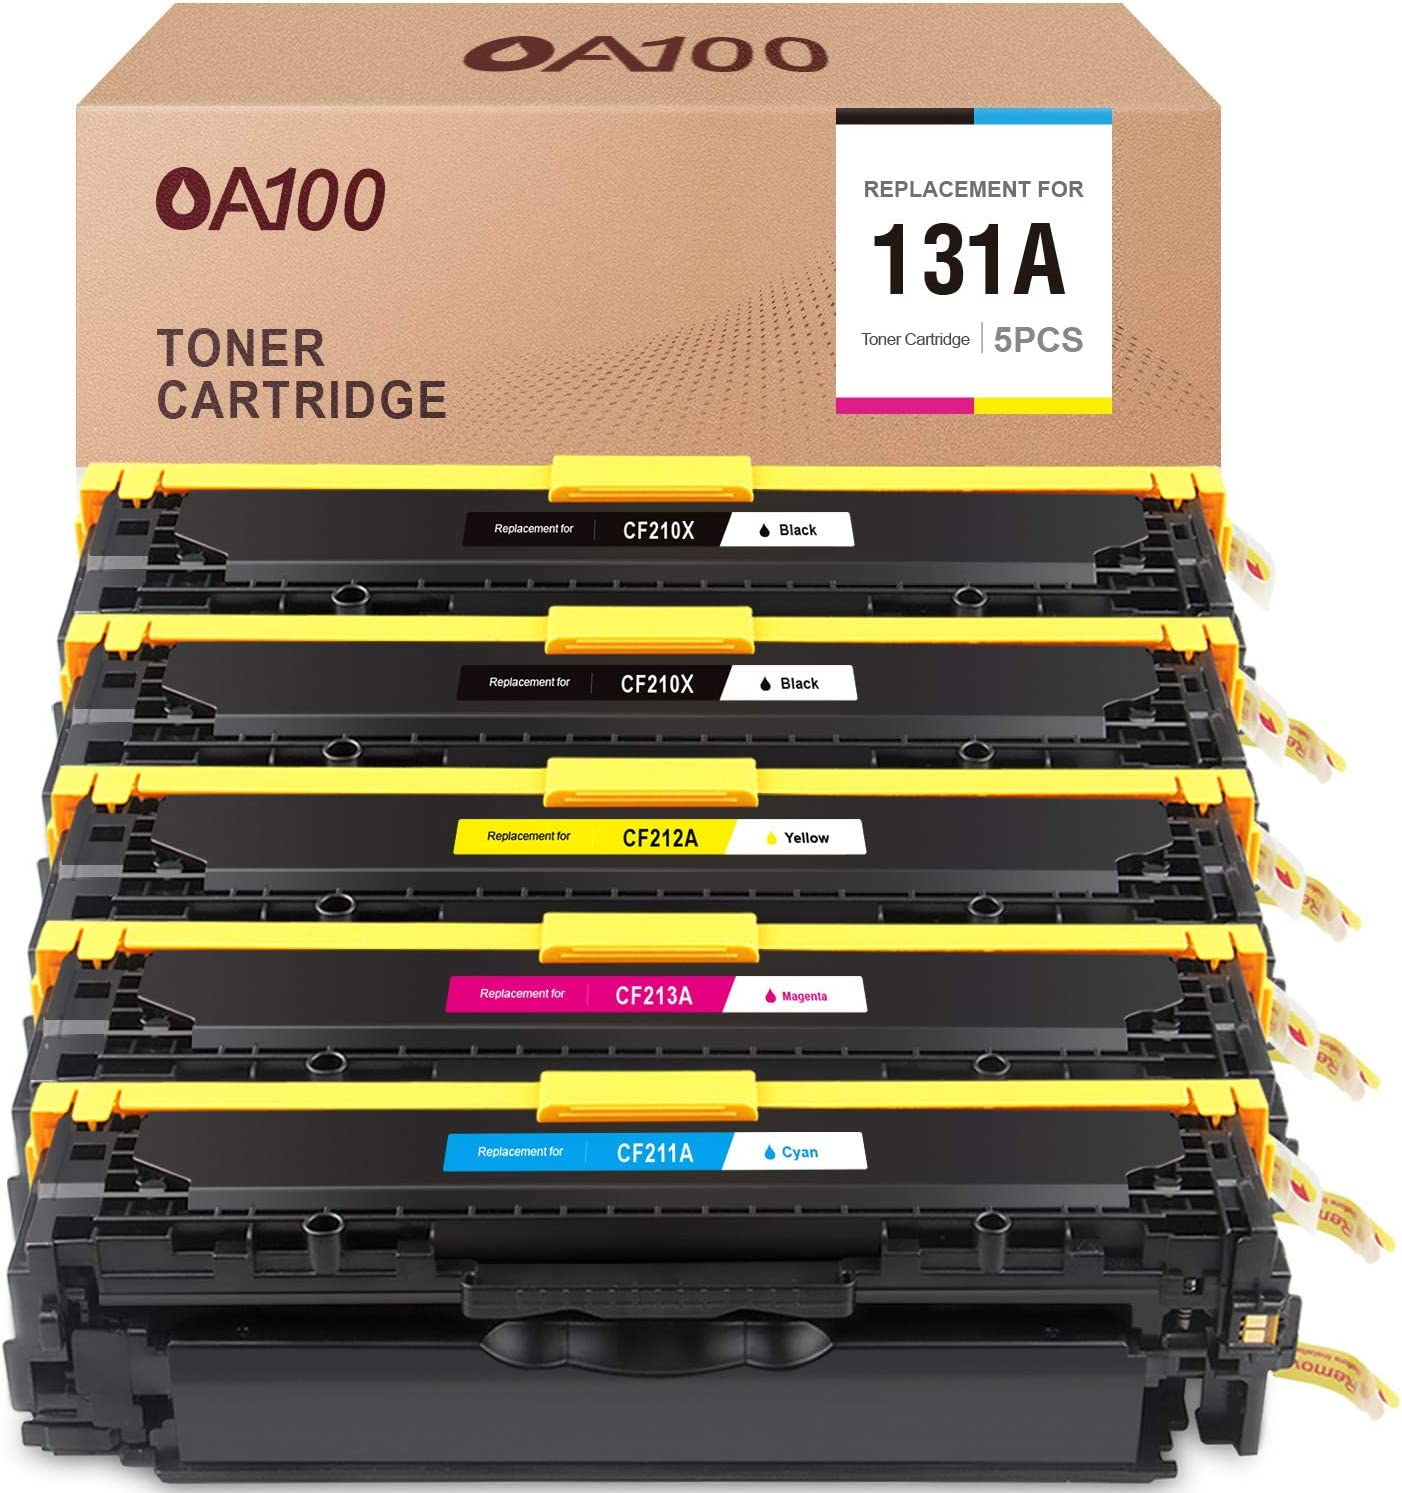 OA100 Remanufactured Toner Cartridge Replacement for HP 131A CF210A CF211A CF212A CF213A for Laserjet Pro 200 Color M251nw M251n MFP M276nw M276n (Black Cyan Magenta Yellow, 5-Pack)